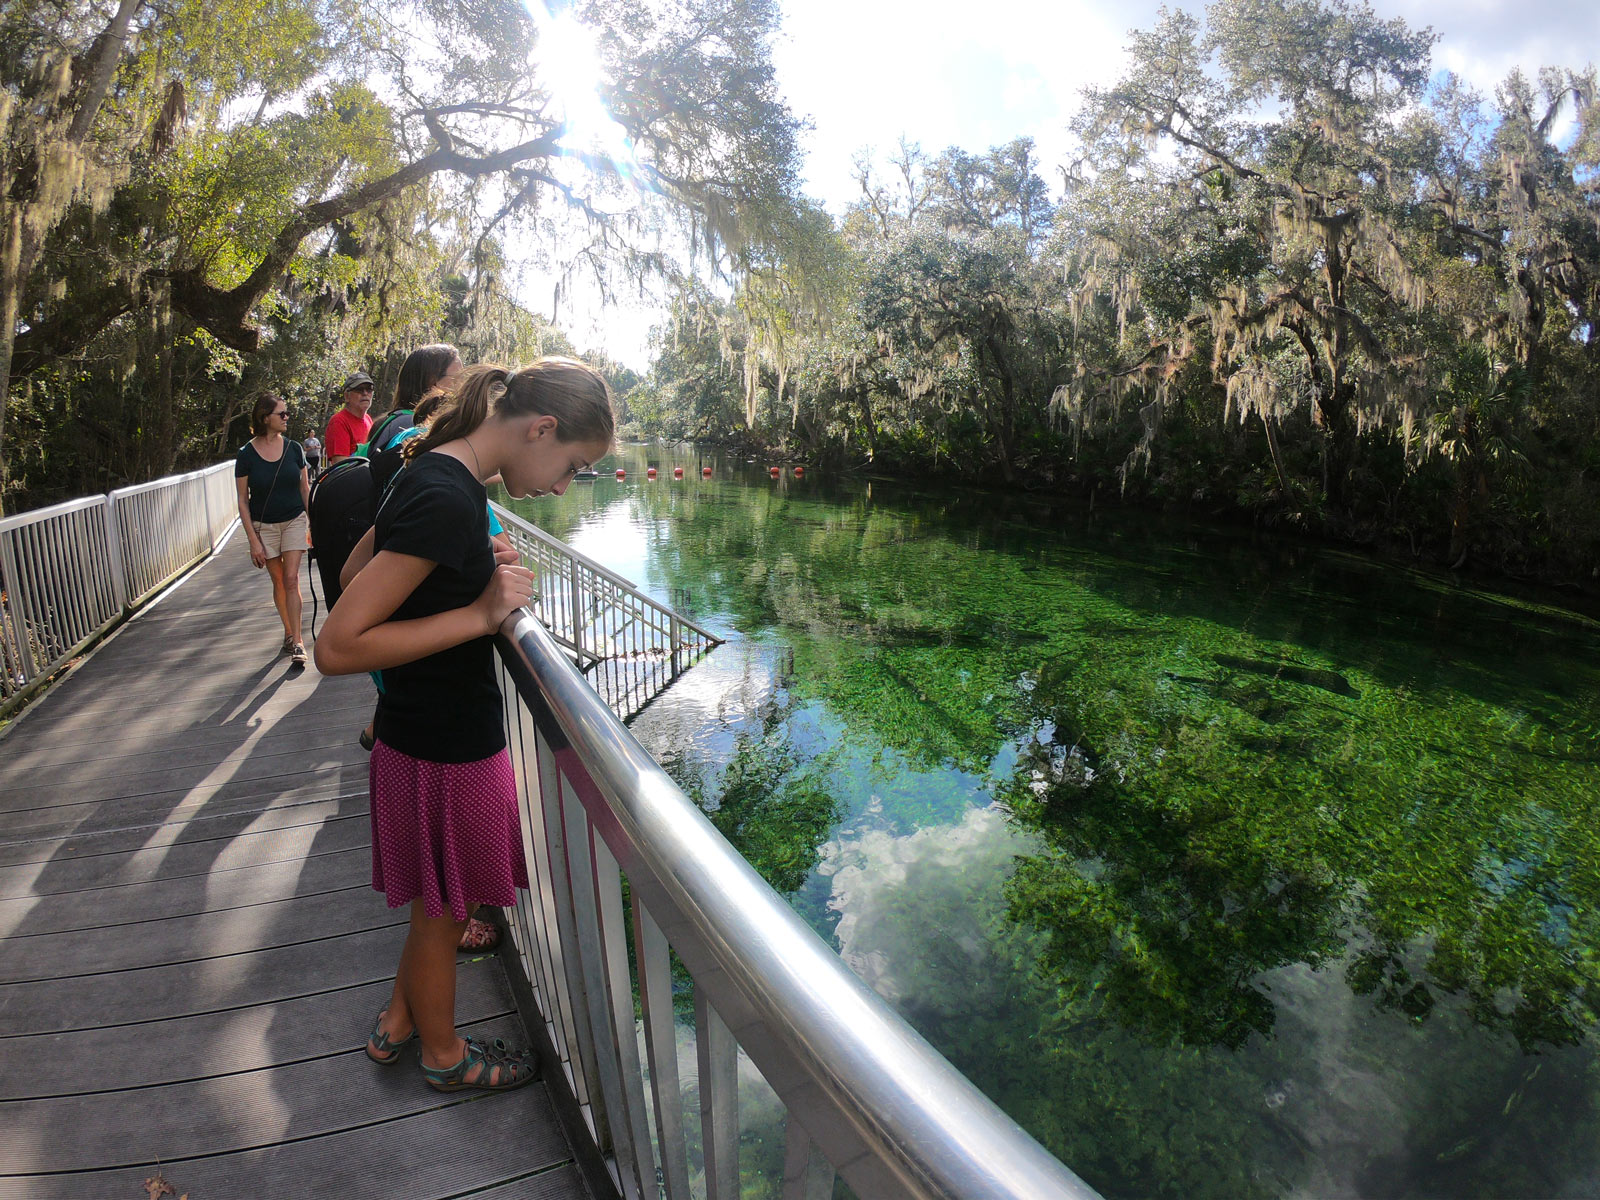 Young girl and others at observation deck looking for manatees in the green waters at Blue Spring State Park, Florida